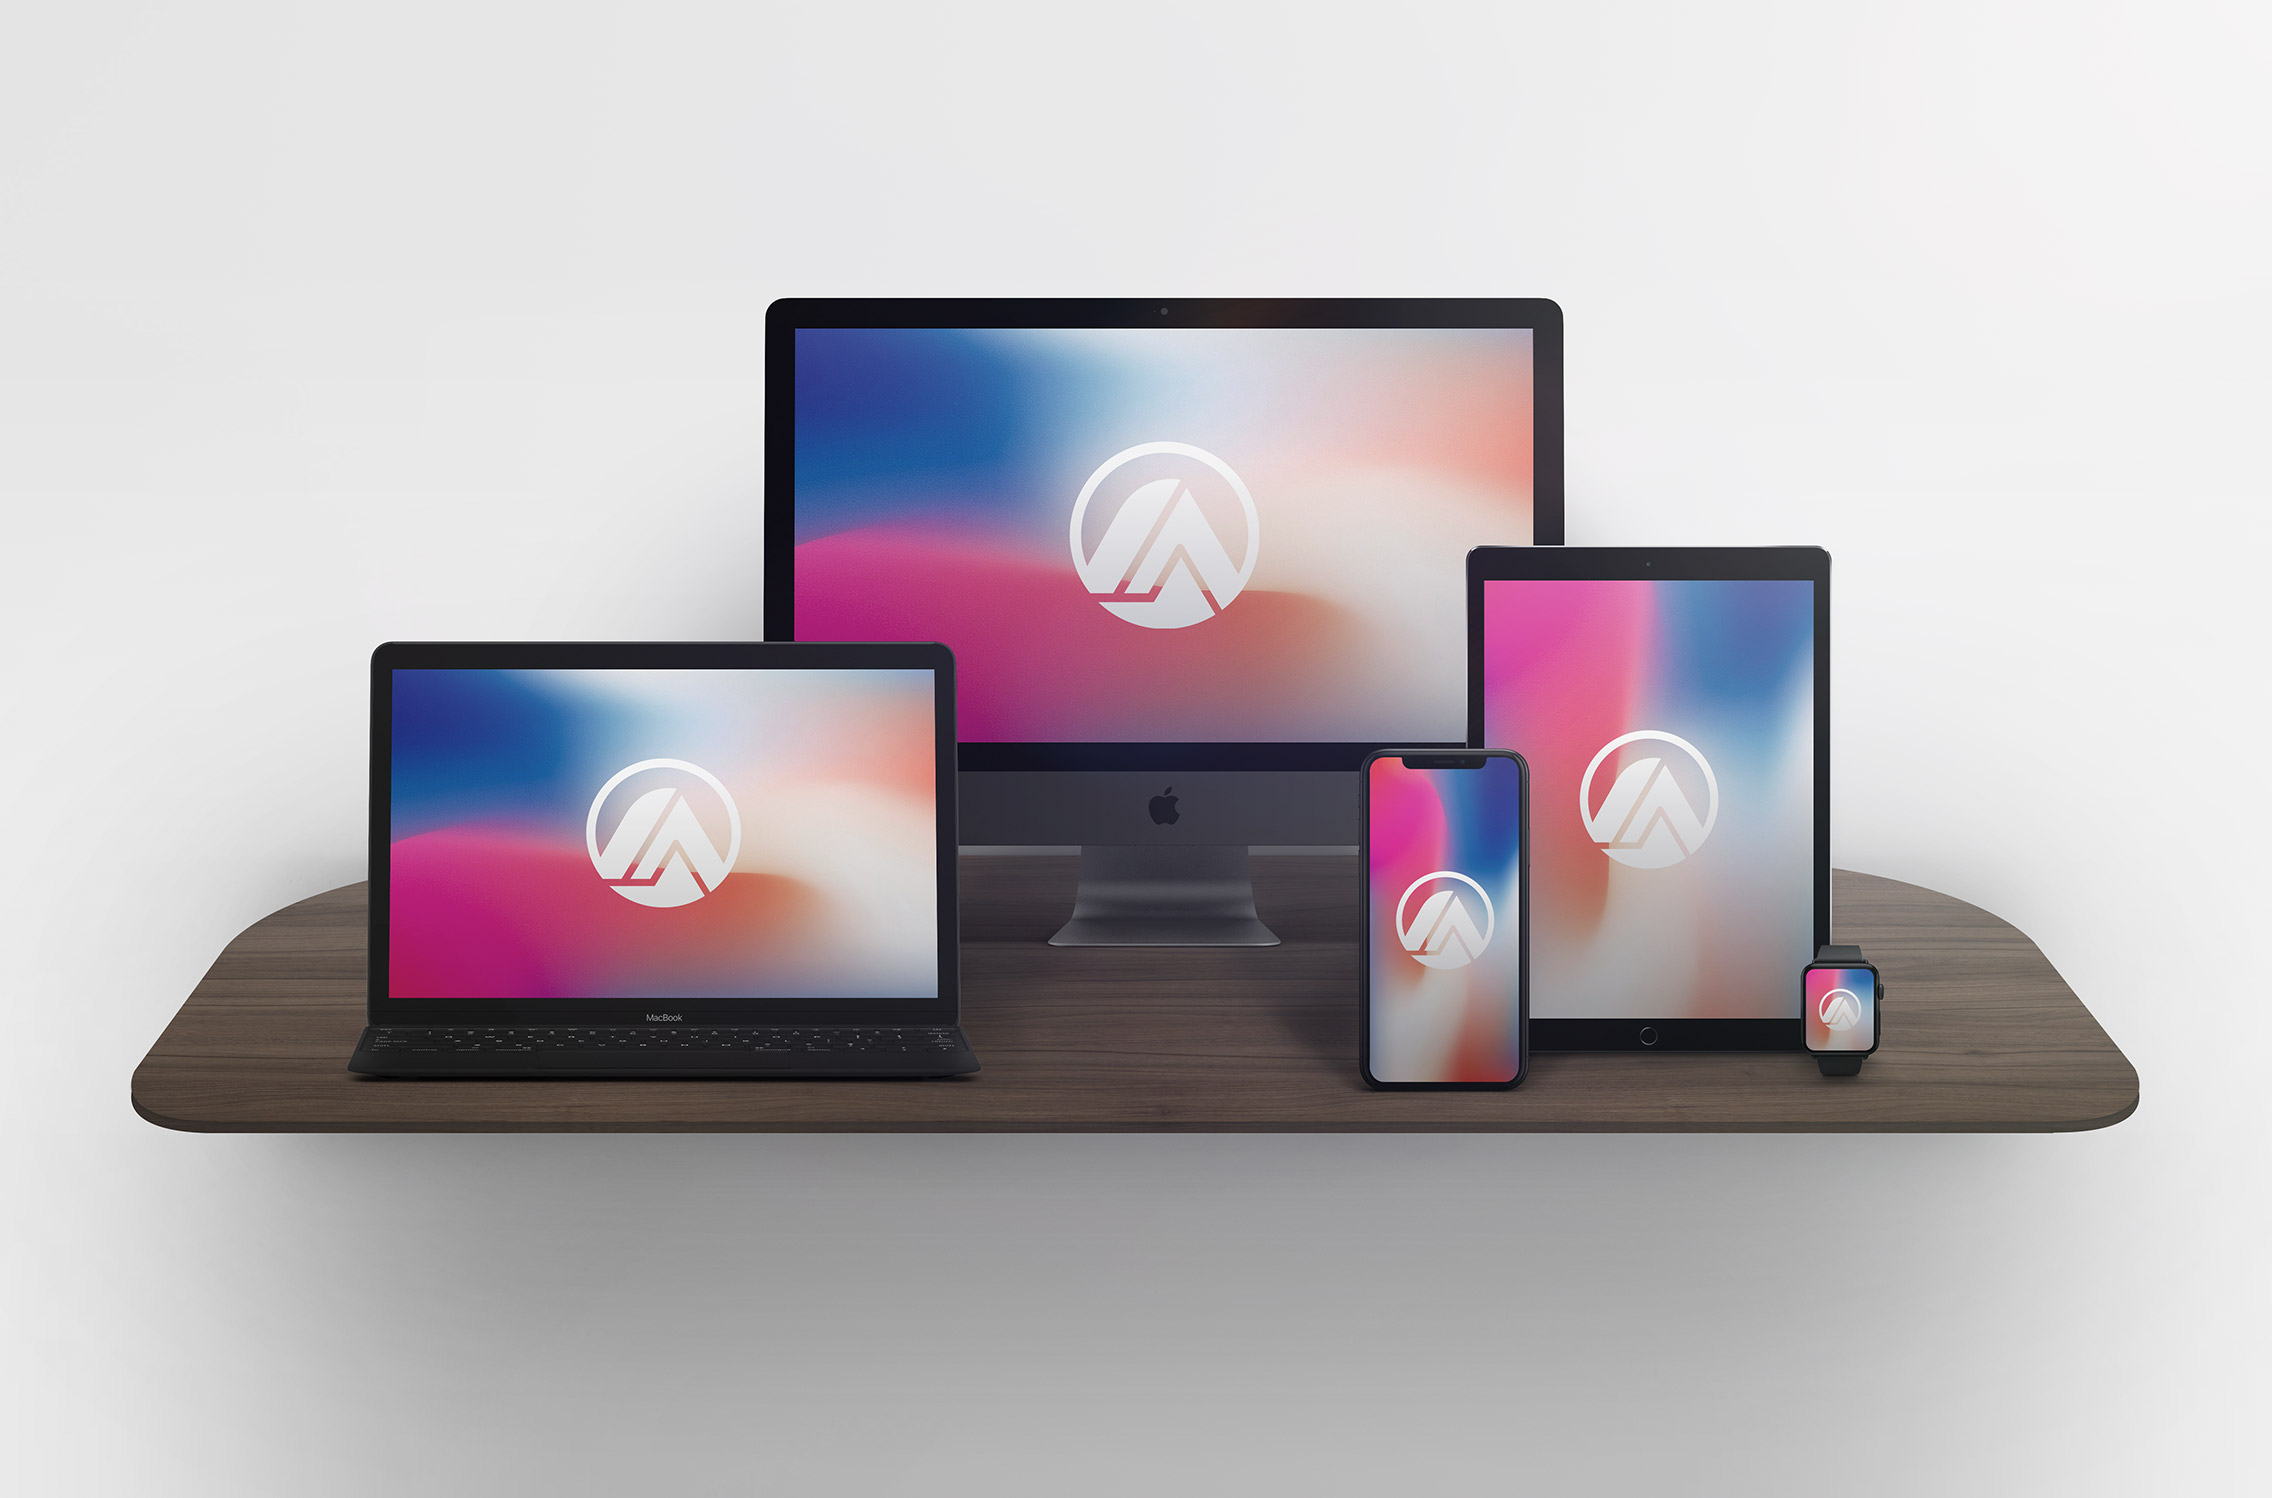 Premium-Apple-Devices-Free-Responsive-Website-Mockup-PSD